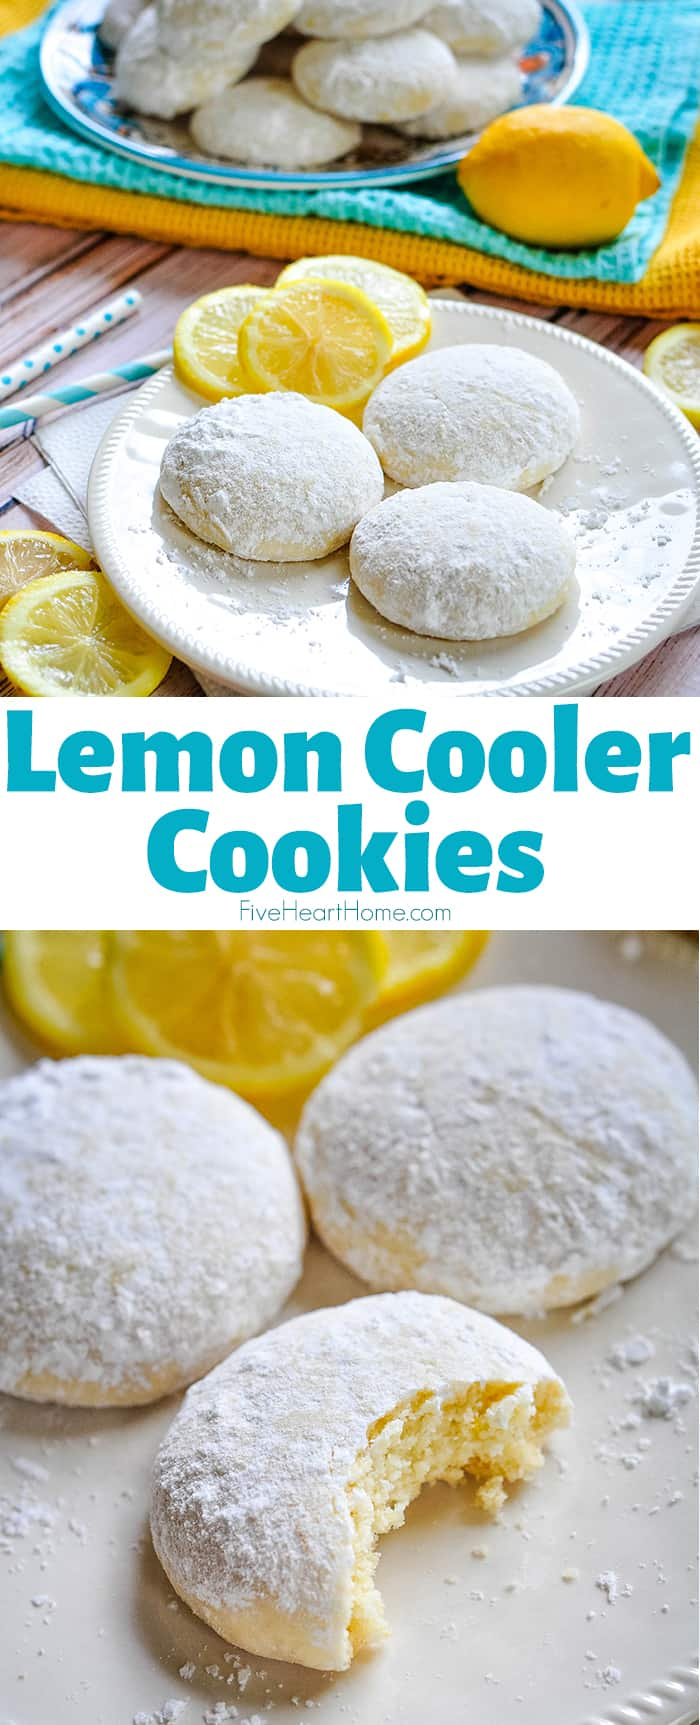 Lemon Cooler Cookies ~ soft, tender cookies bursting with fresh lemon and real butter, then coated in lemony powdered sugar! | FiveHeartHome.com via @fivehearthome